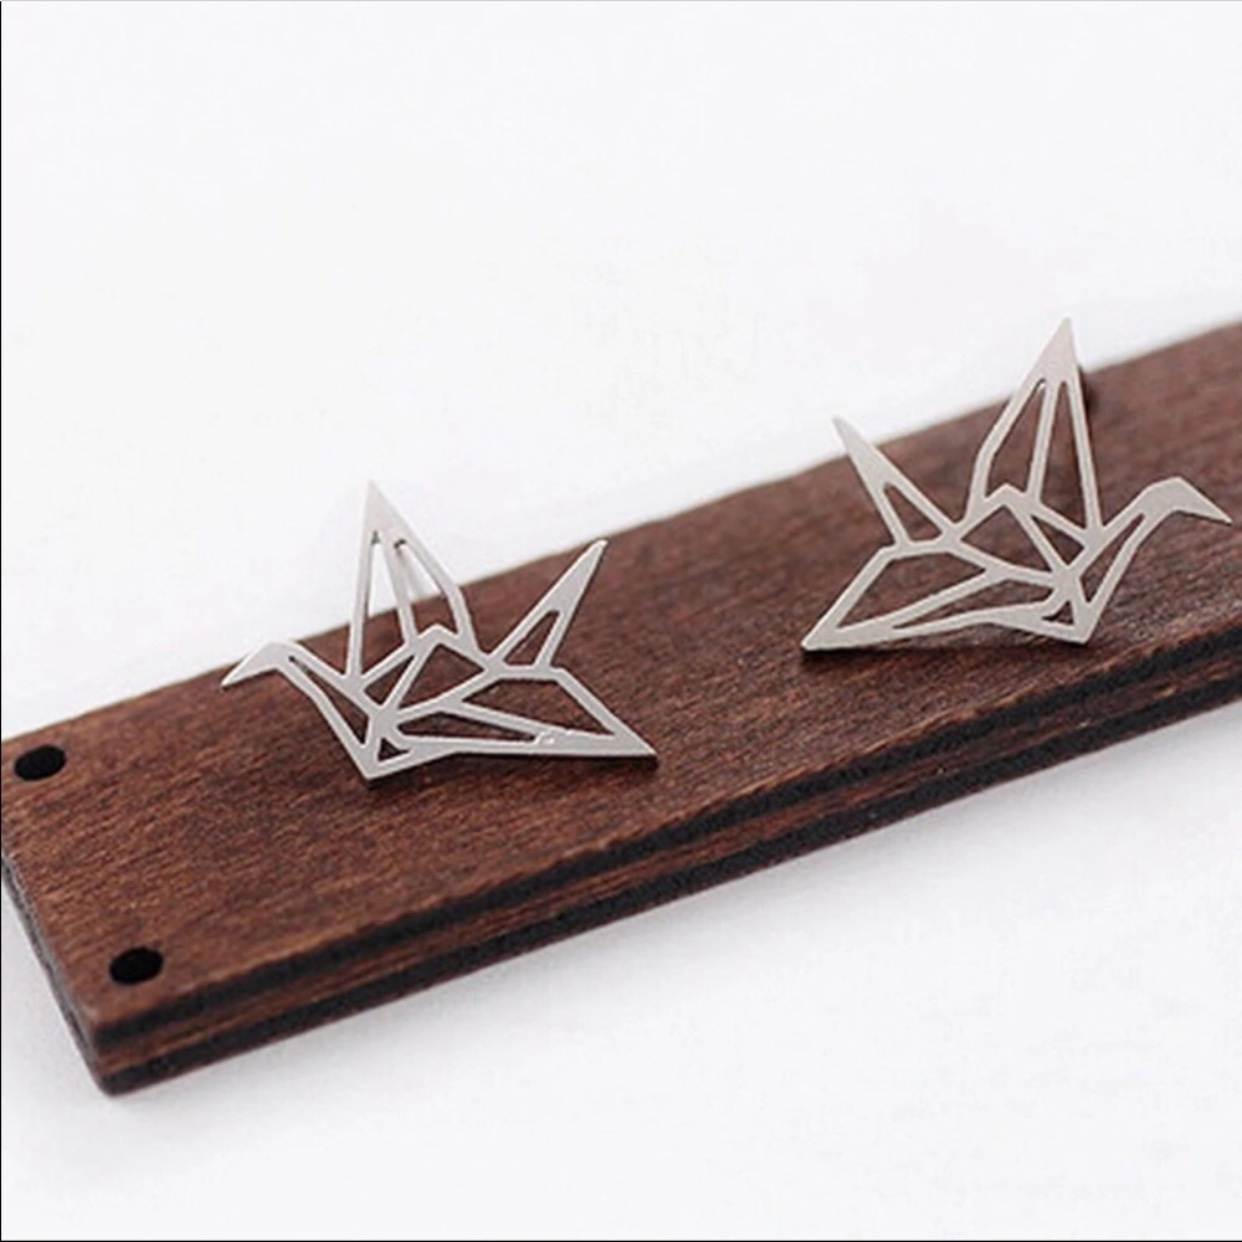 New Sterling Silver Origami Crane Post Earrings! | FoldIT Creations | 1242x1242